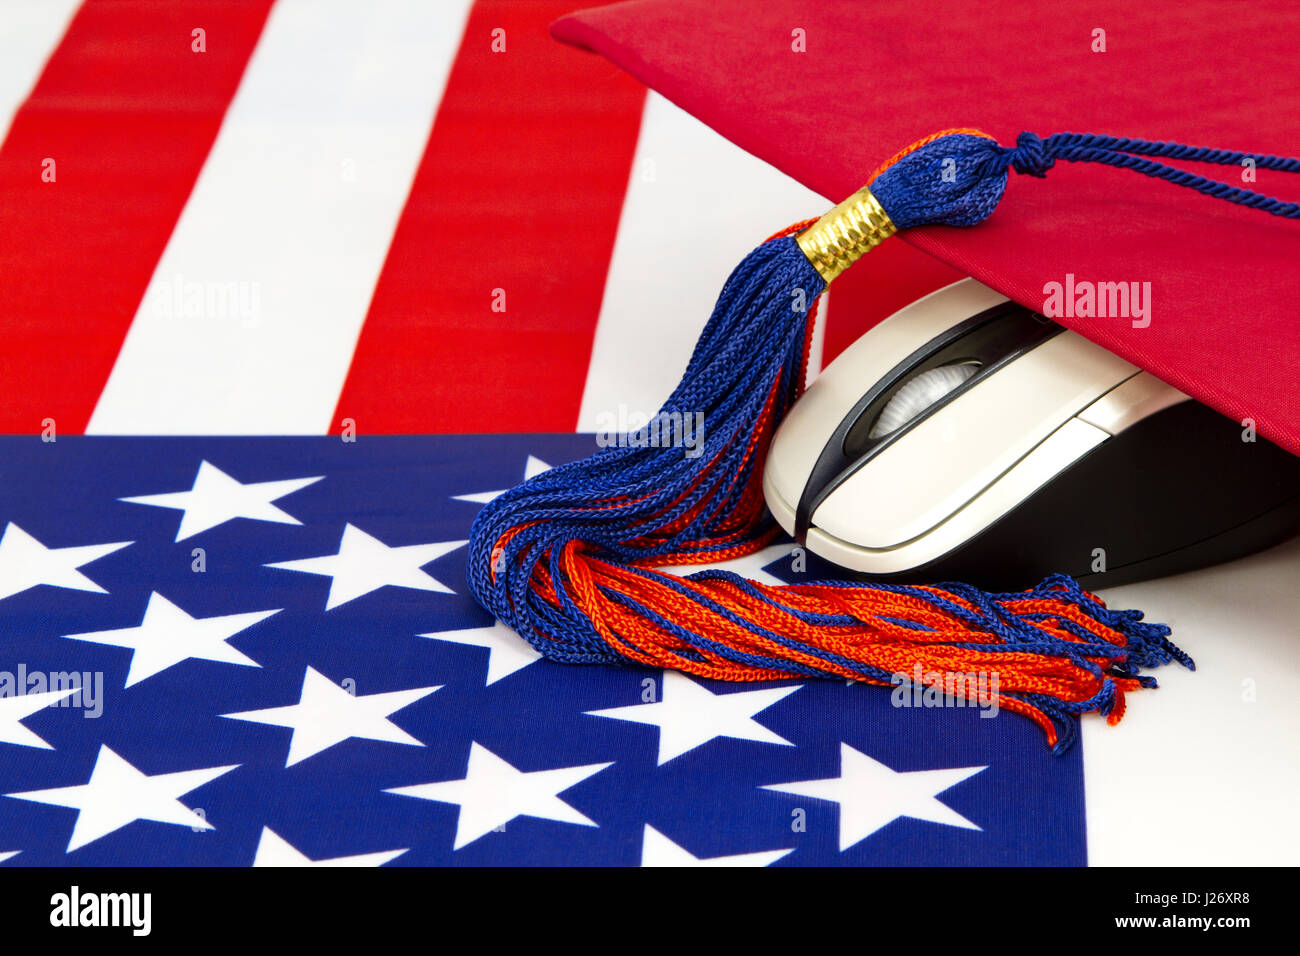 Graduation cap and tassel with computer mouse and American flag design reflects modern priorities.  21st century - Stock Image